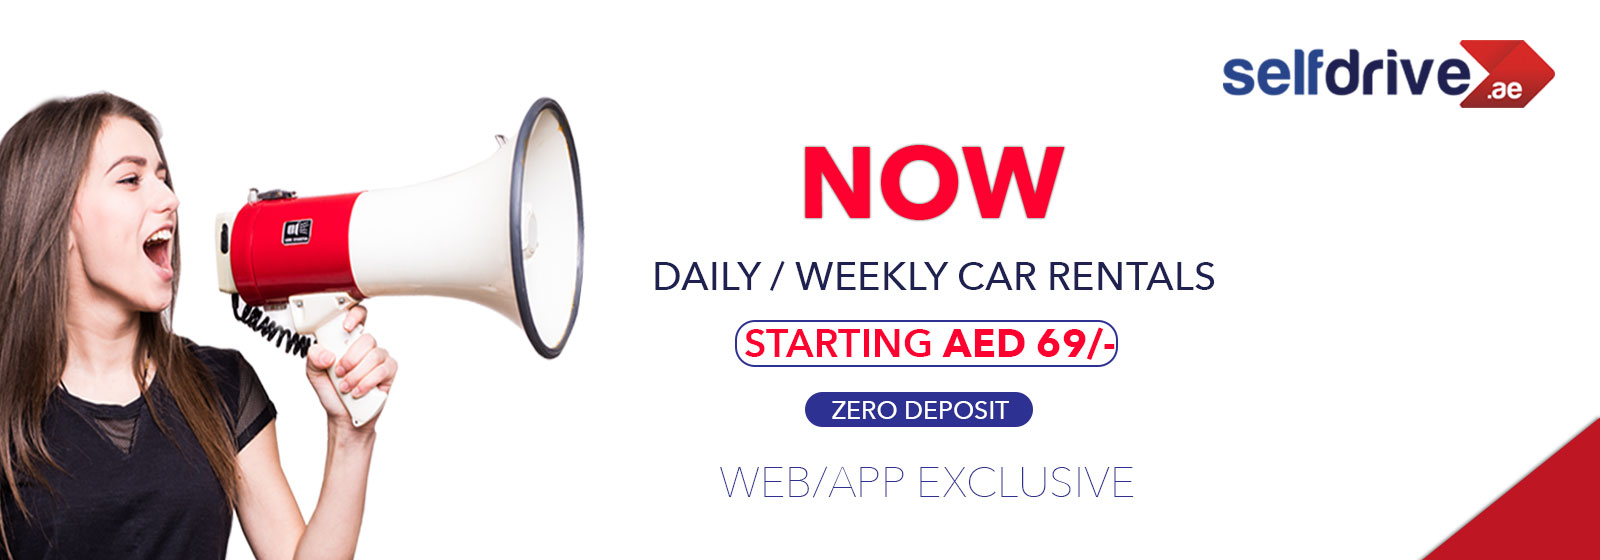 Daily/Weekly Car Rentals Starting AED 69/-